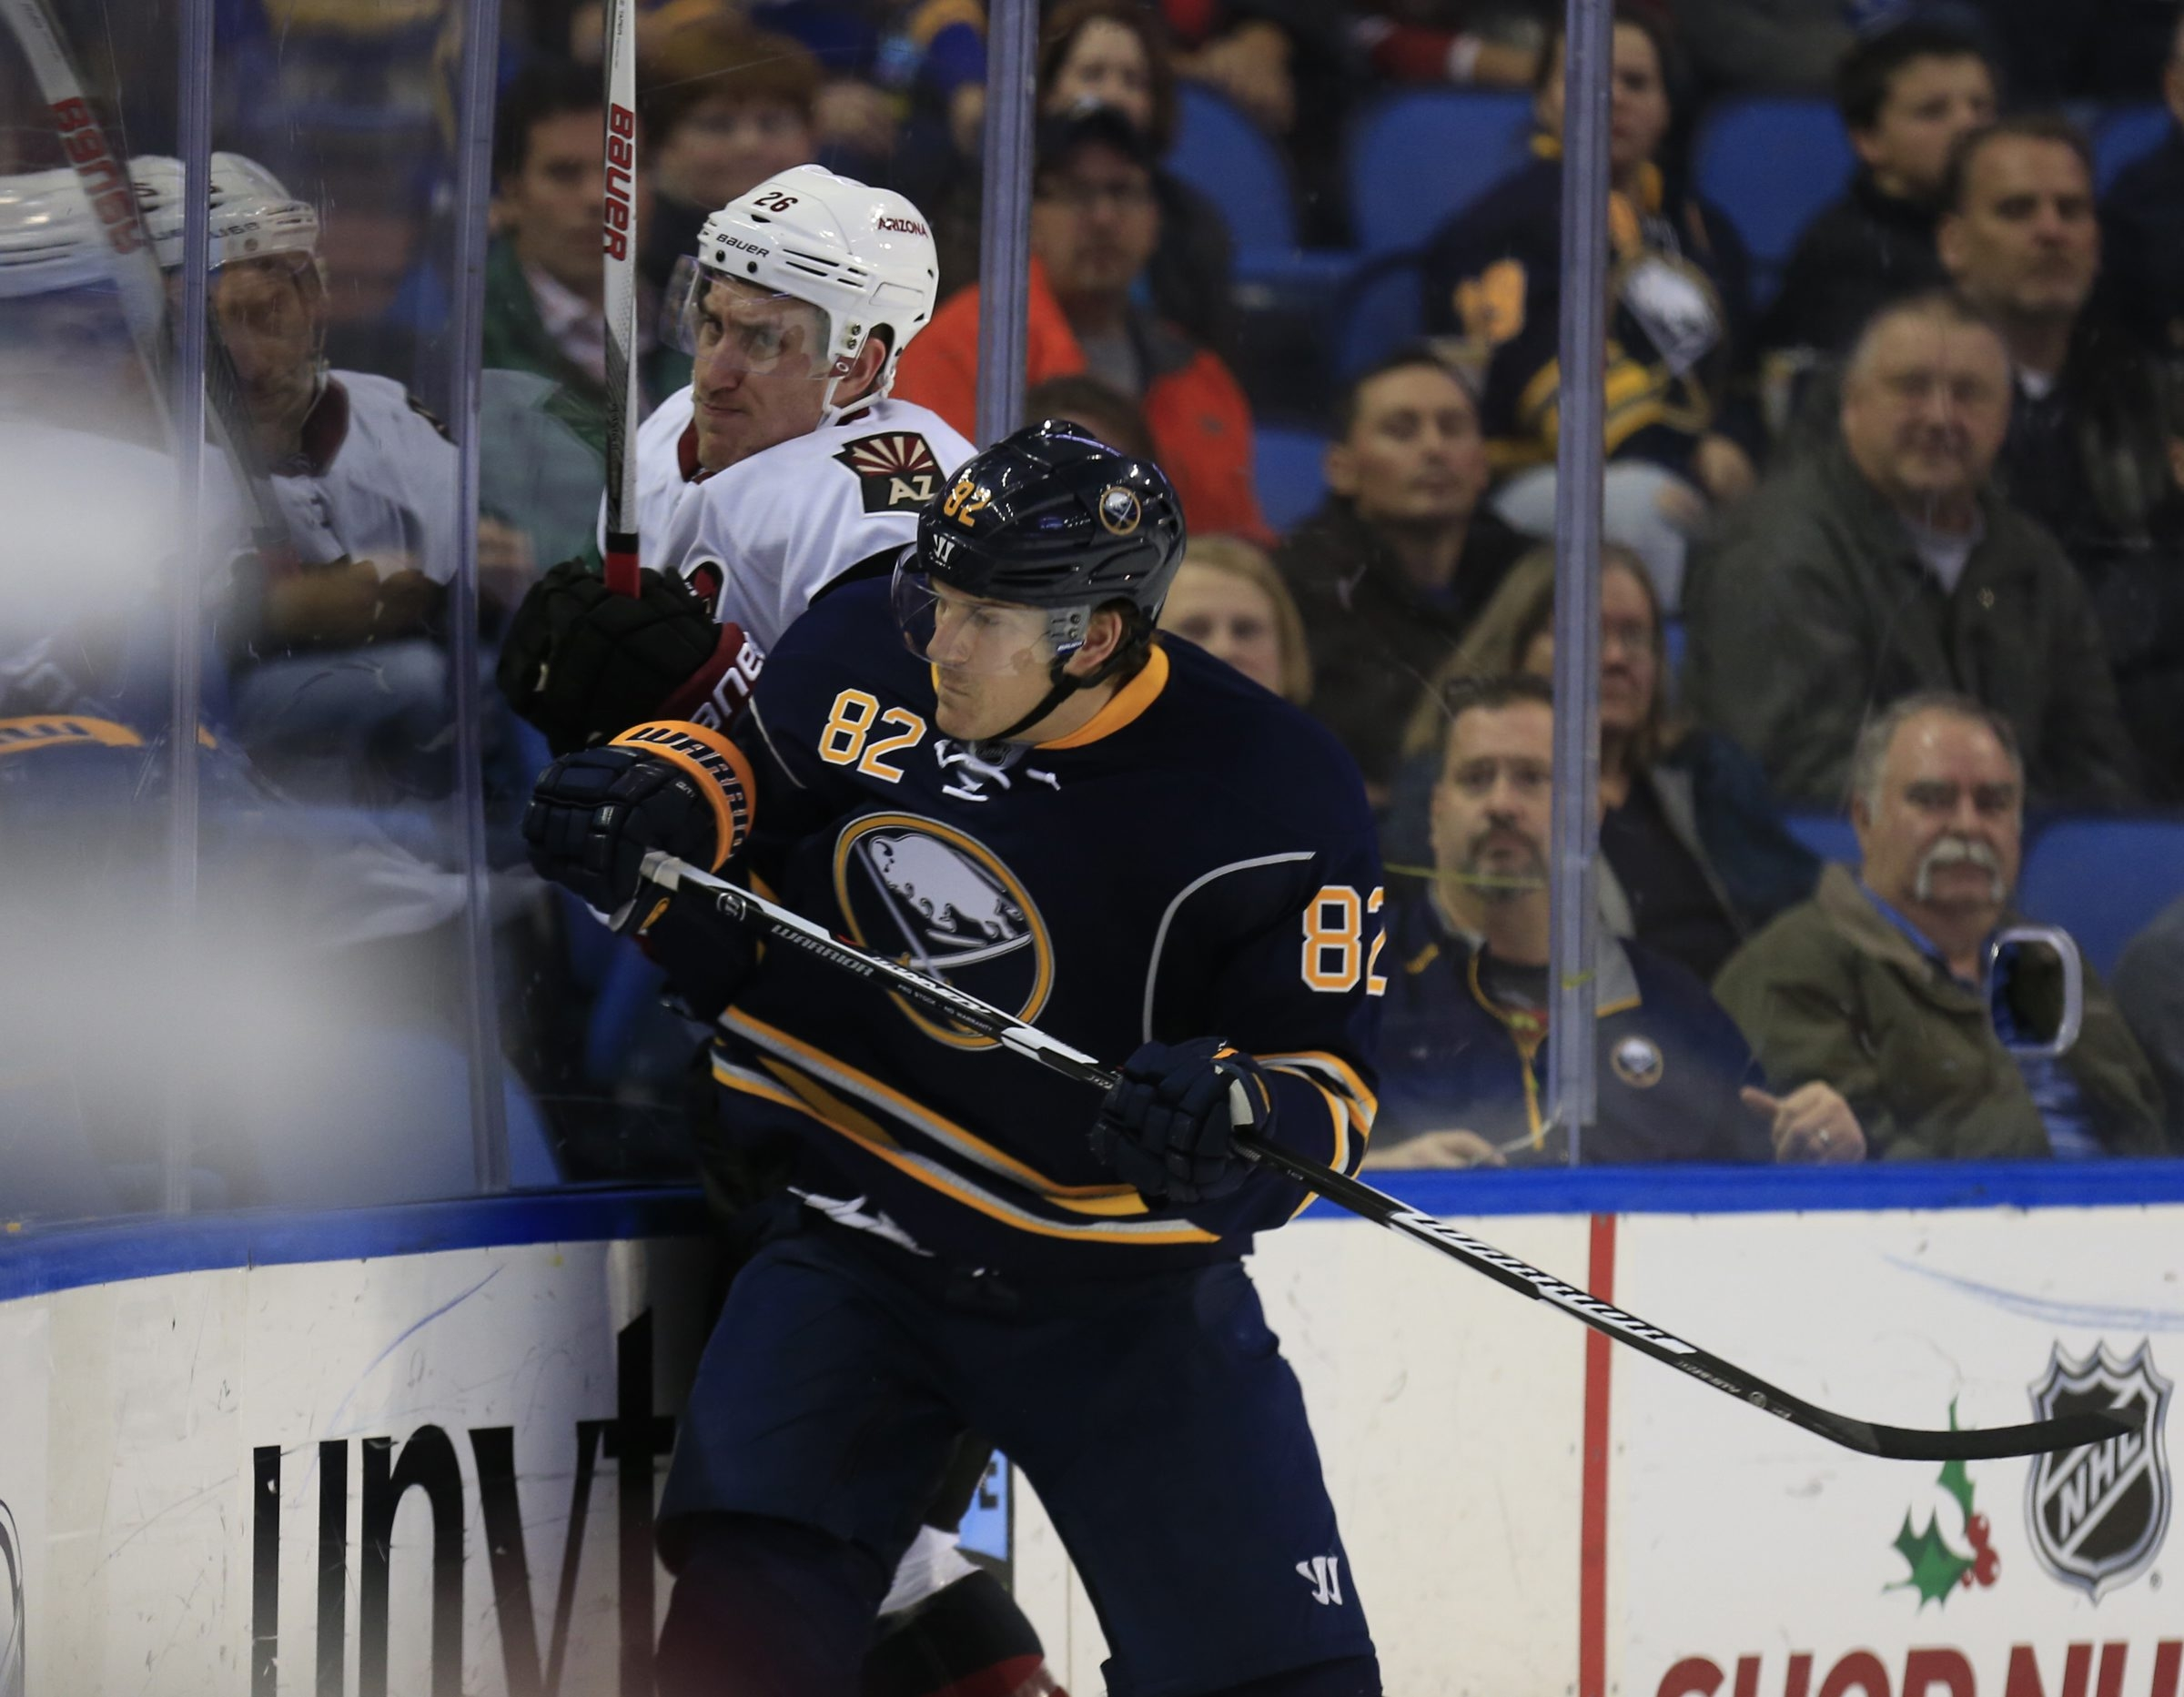 Linemate Marcus Foligno will try and replace some of the physical play lost due to Nic DesLauriers injury.